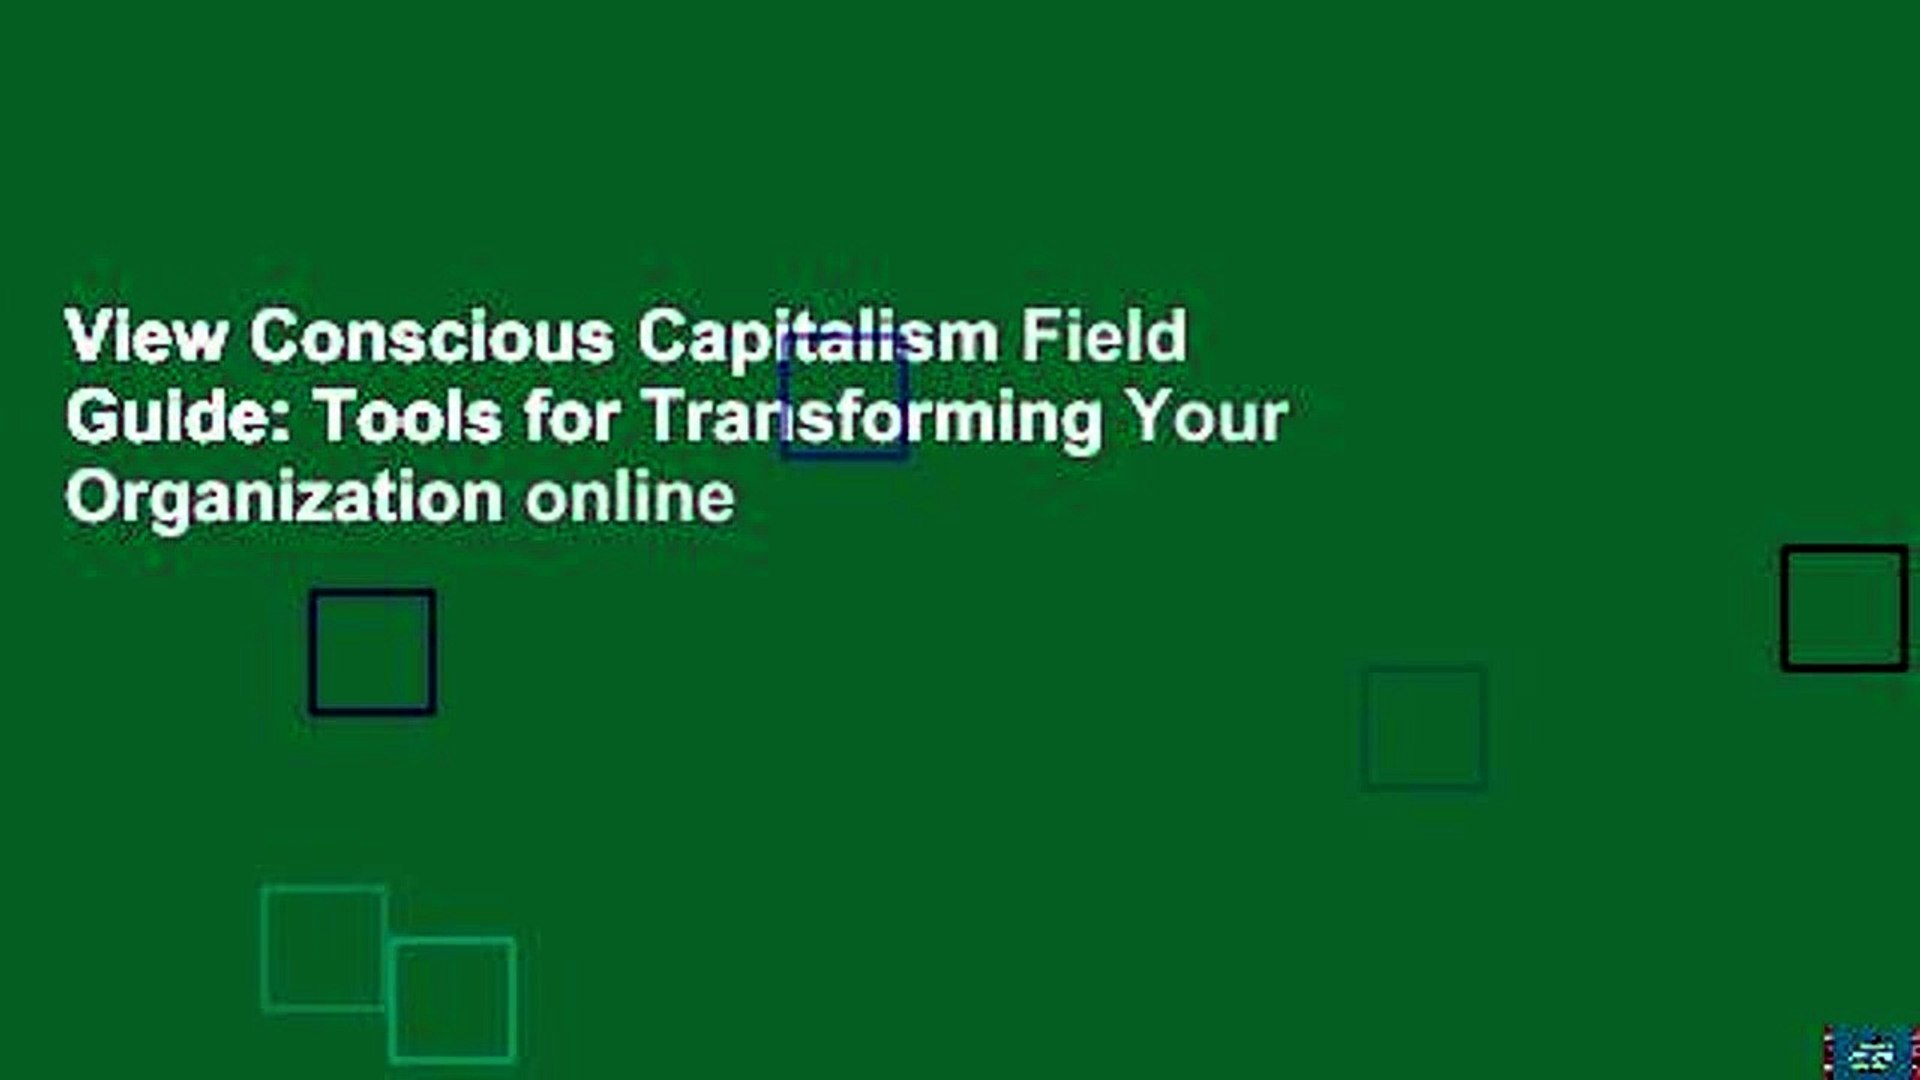 Conscious Capitalism Field Guide Tools for Transforming Your Organization